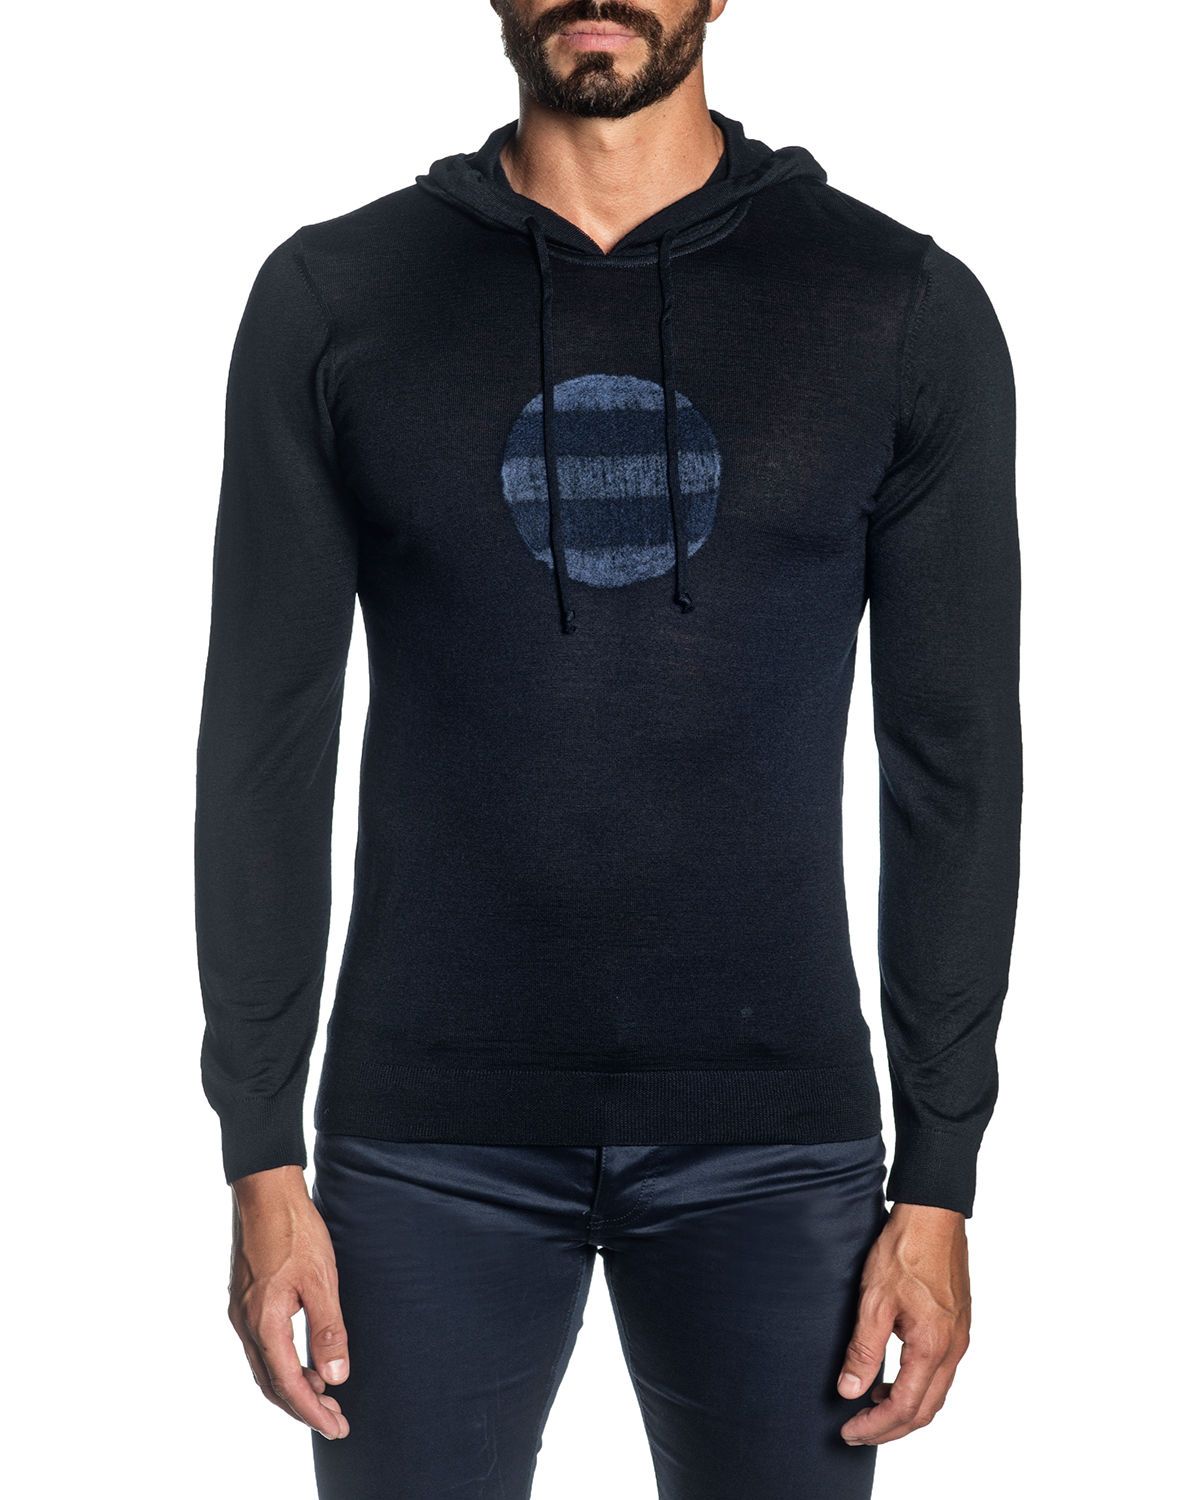 Men's Knit Graphic Pullover Hoodie